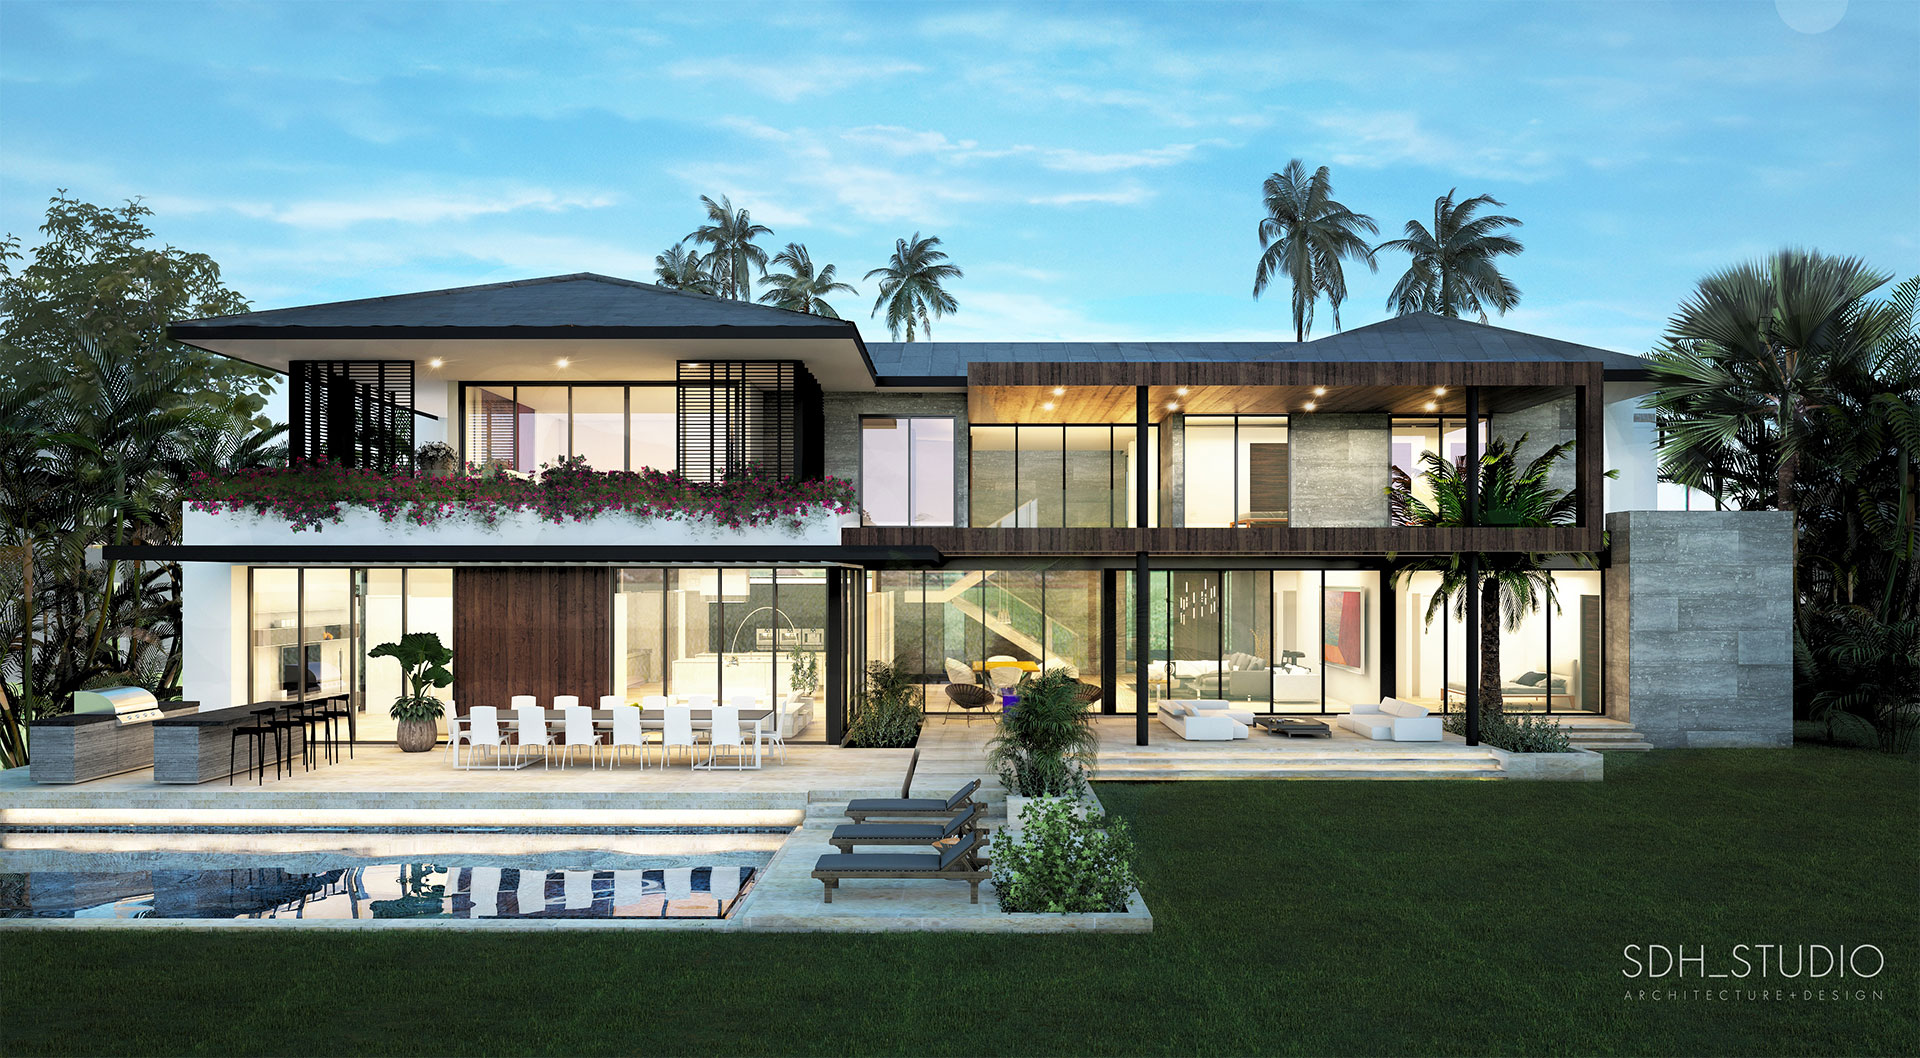 Exterior Back Architecture and Construction Administration project in Bal Cross, Florida